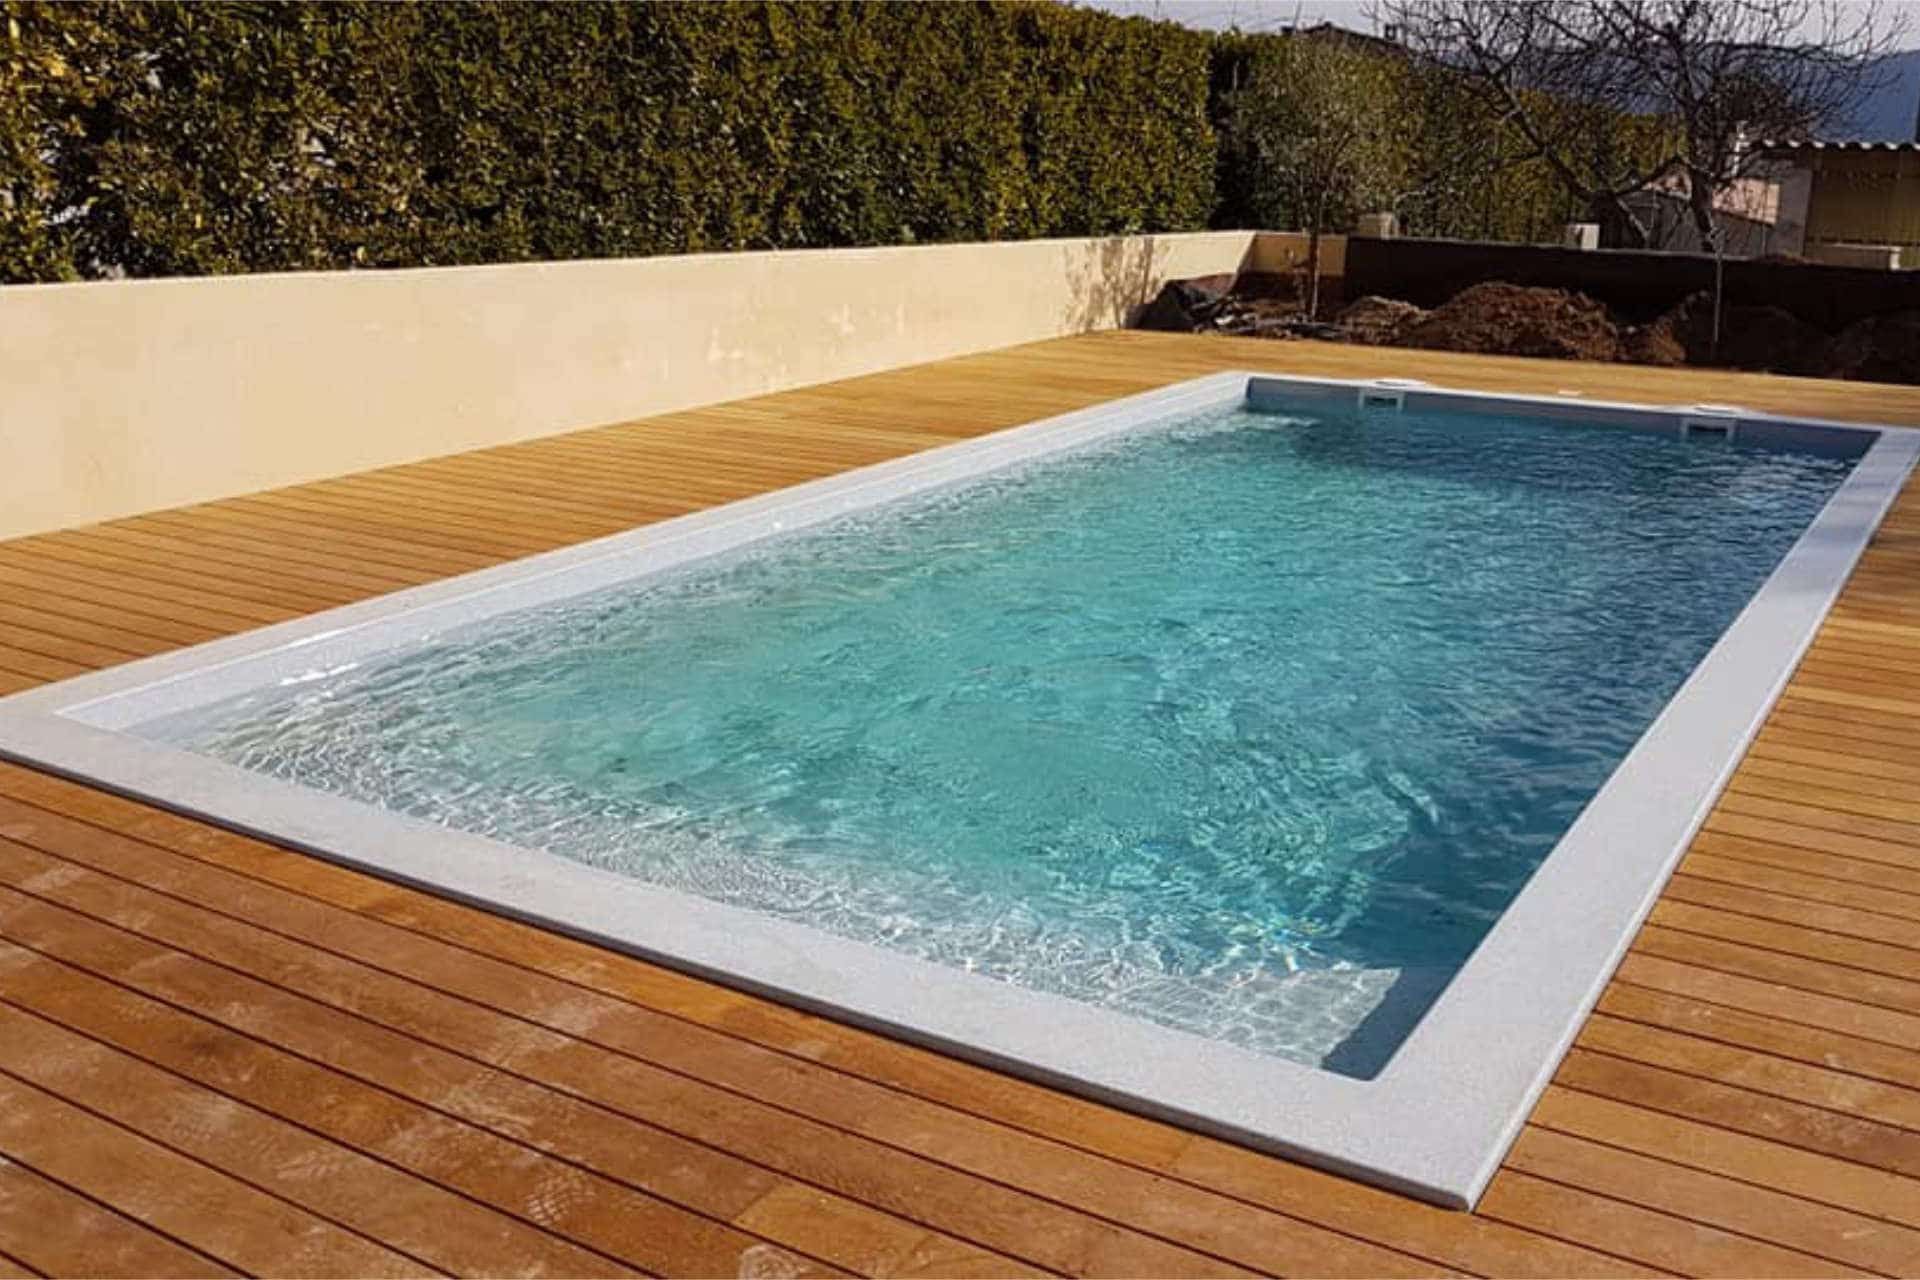 Piscine Coque Polyester Modèle Riviera - Freedom Sud Ouest dedans Freedom Piscine